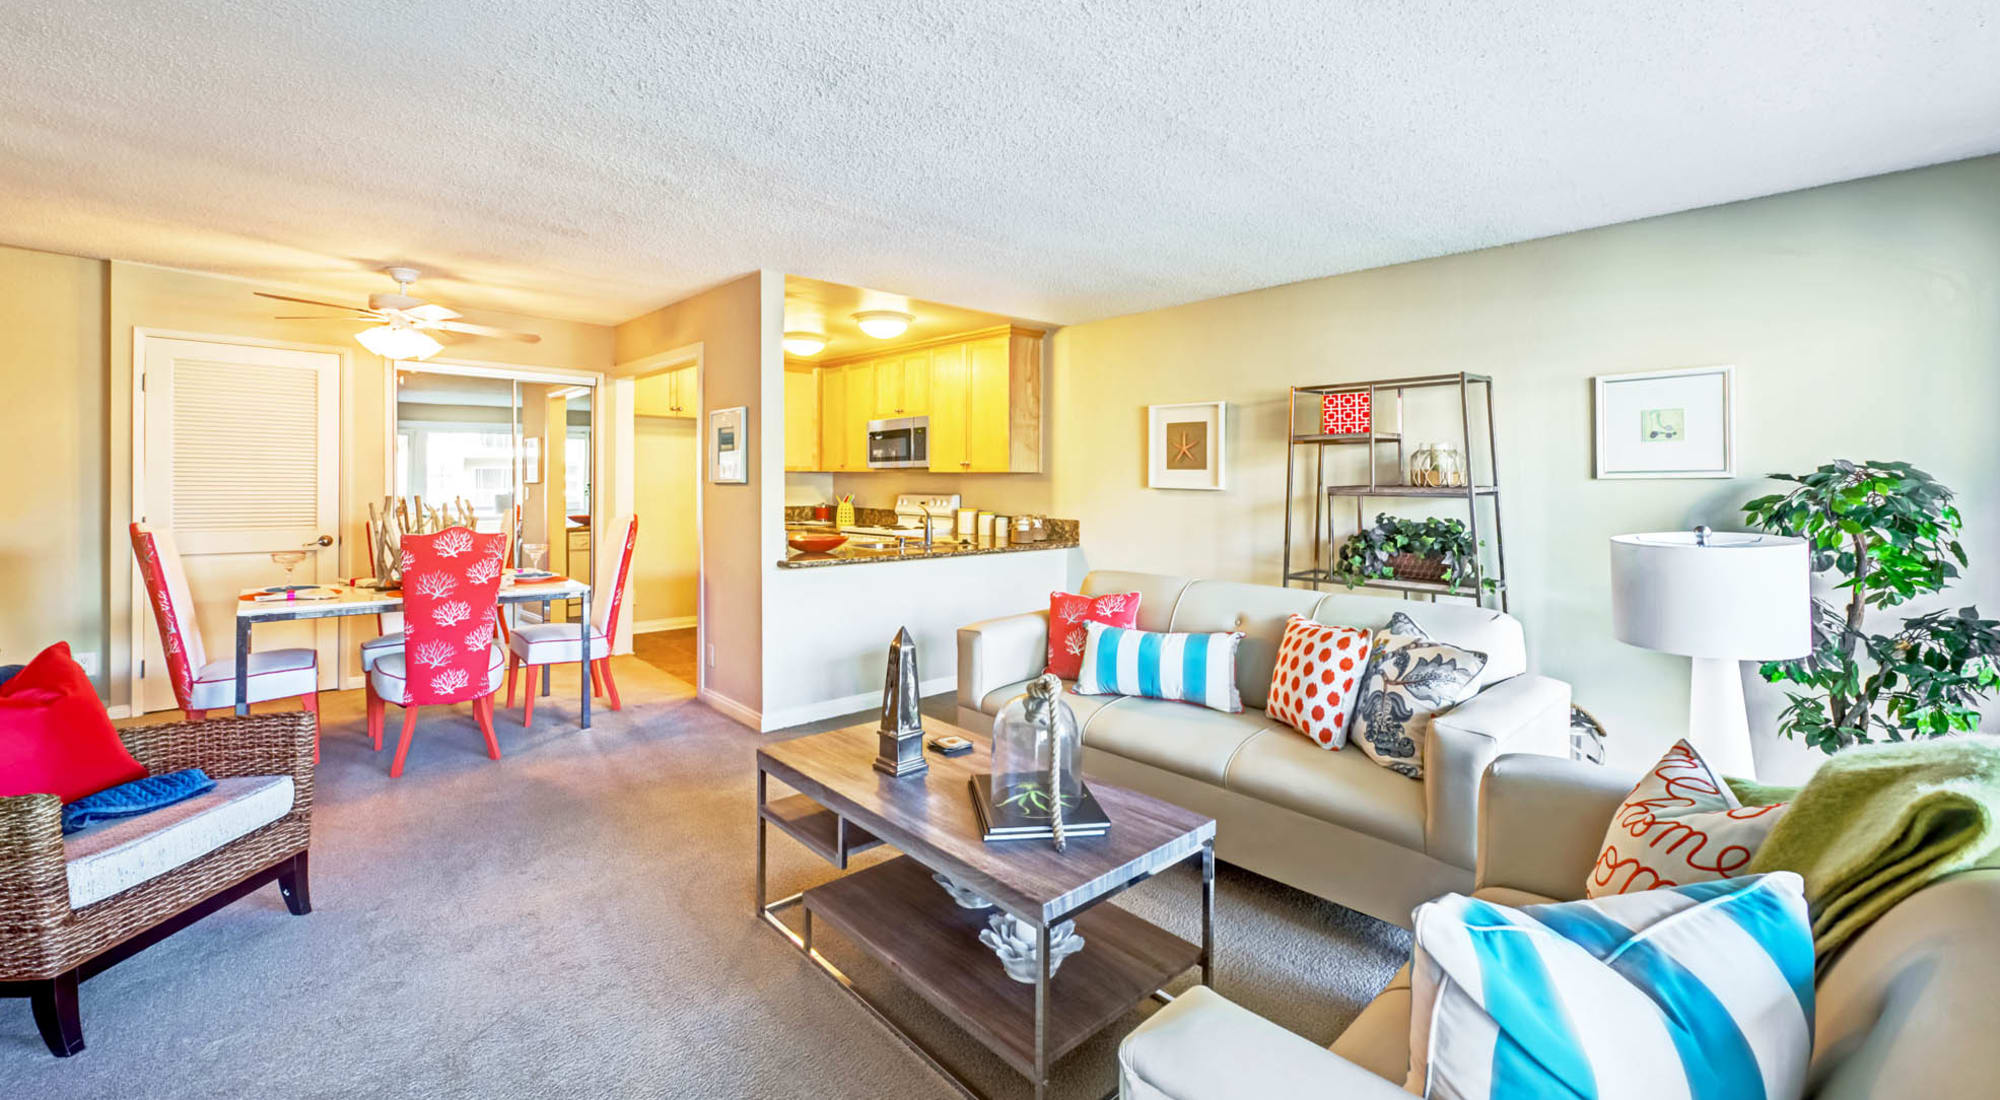 Well-furnished open-concept living space in a model home at The Tides at Marina Harbor in Marina Del Rey, California